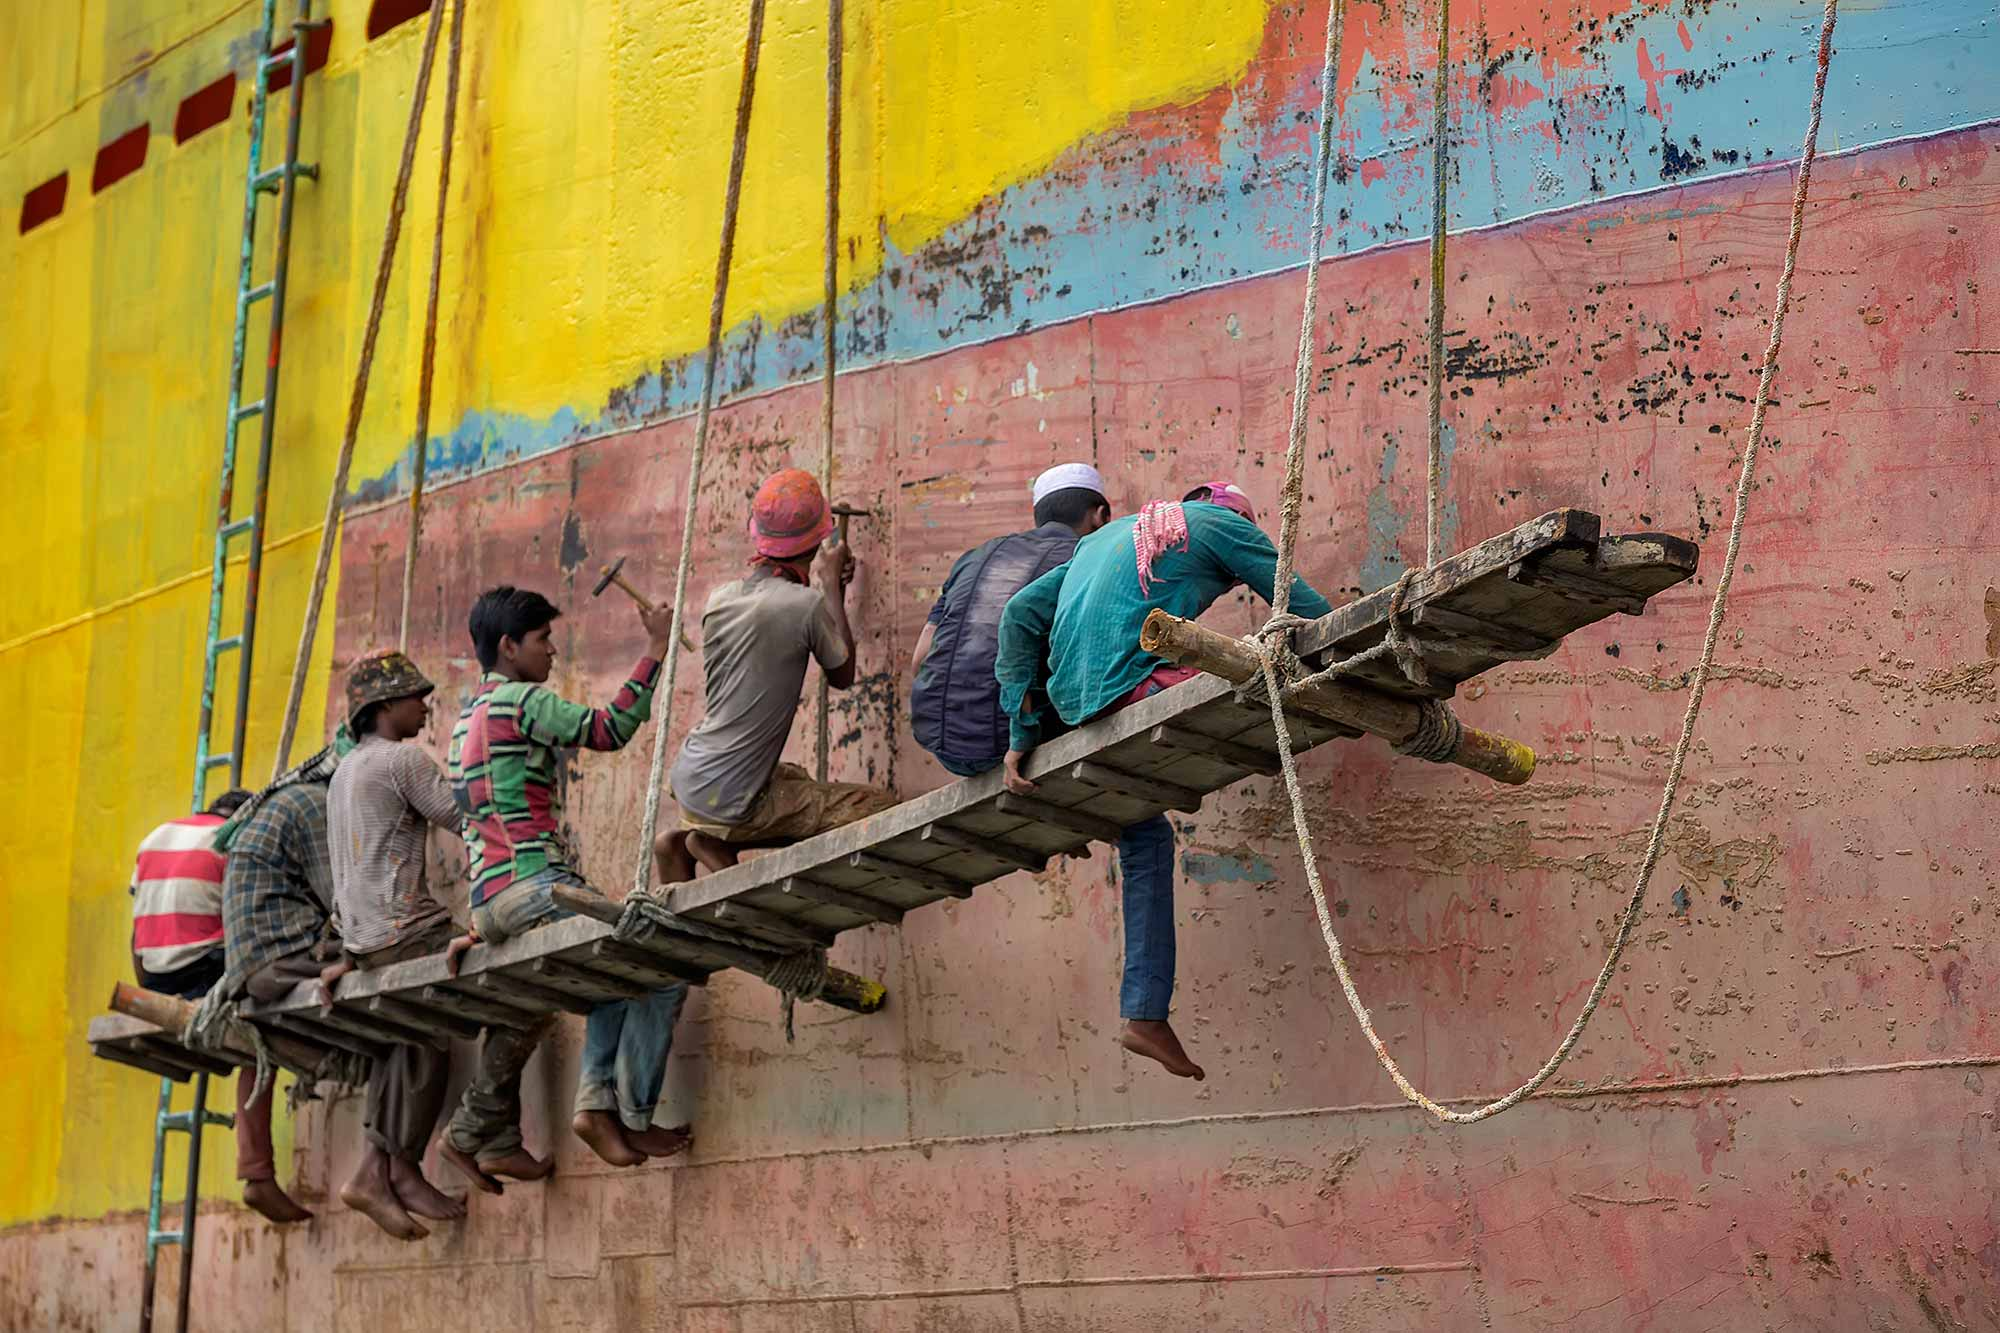 Working men at Sadarghat port in Dhaka, Bangladesh. © Ulli Maier & Nisa Maier